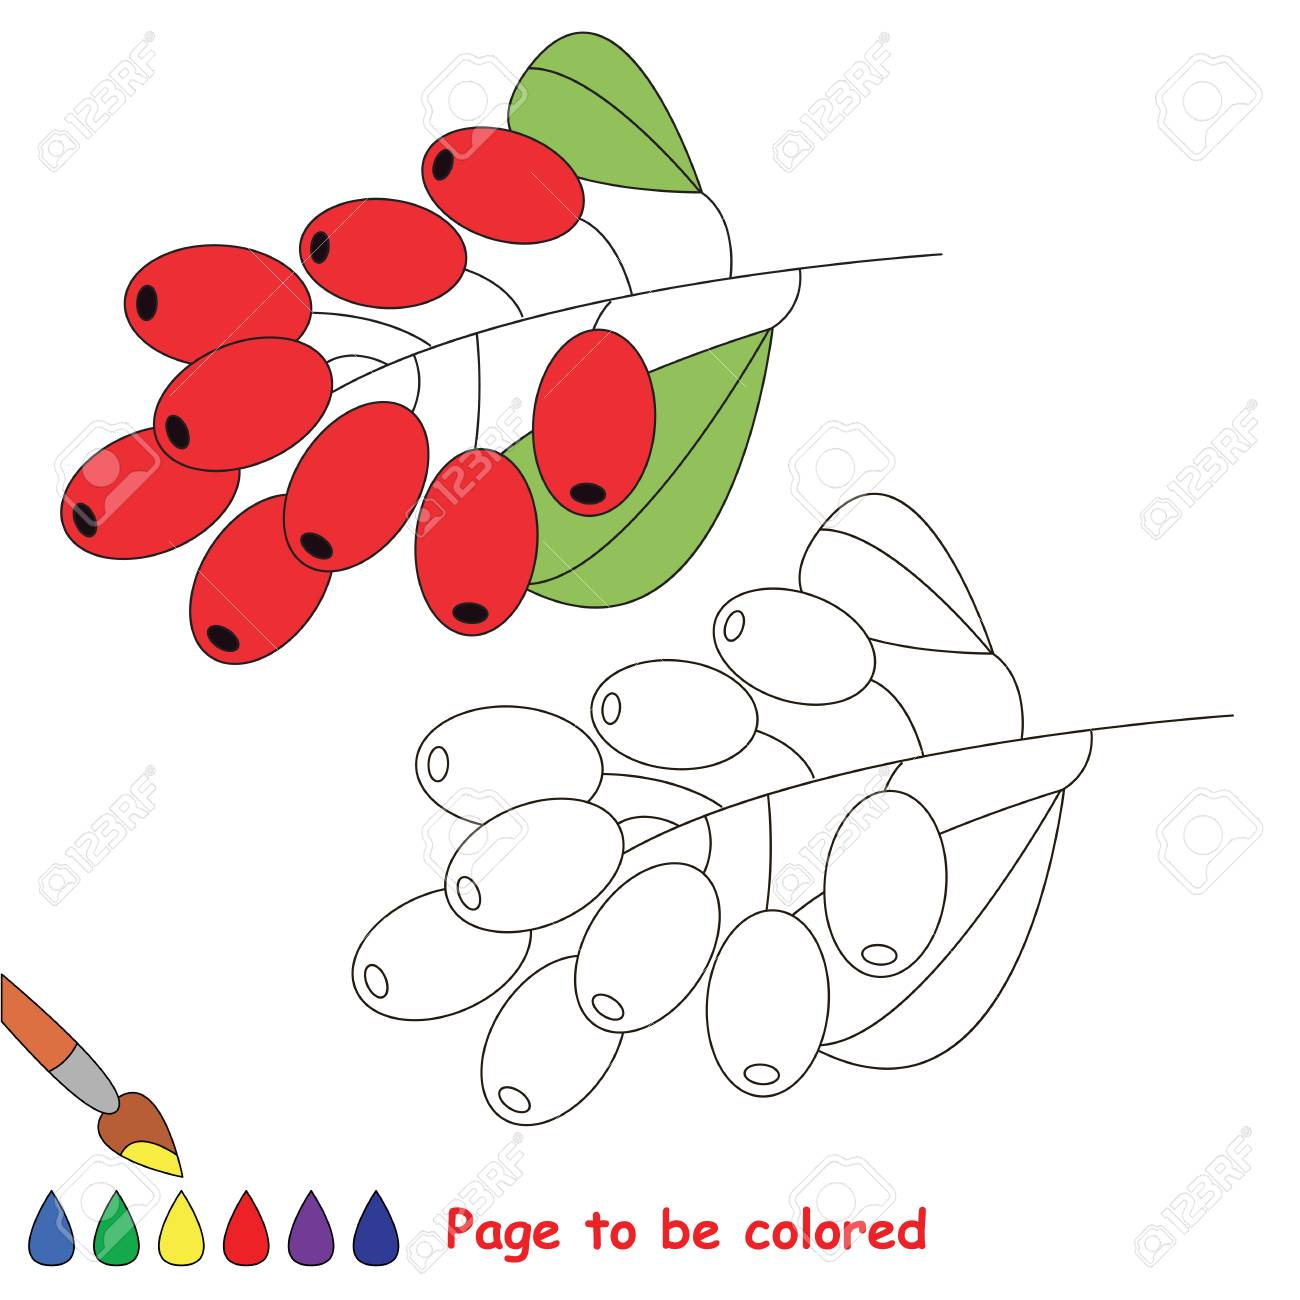 Educational Worksheet To Be Colored By Sample Easy Paint Game For Preschool Kids